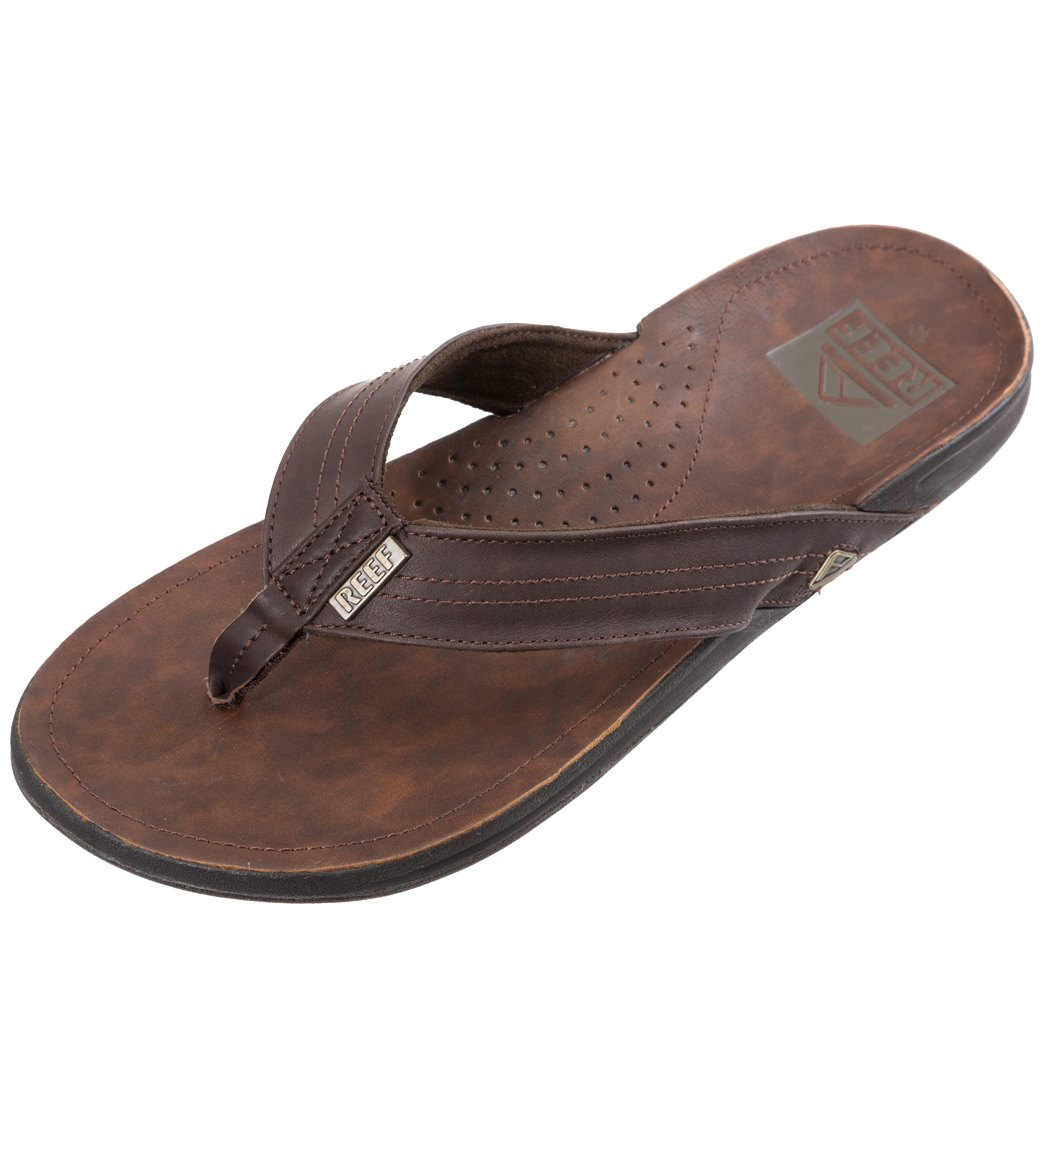 dc8bbd8fe026 Reef Men s J-Bay III Flip Flop at SwimOutlet.com - Free Shipping